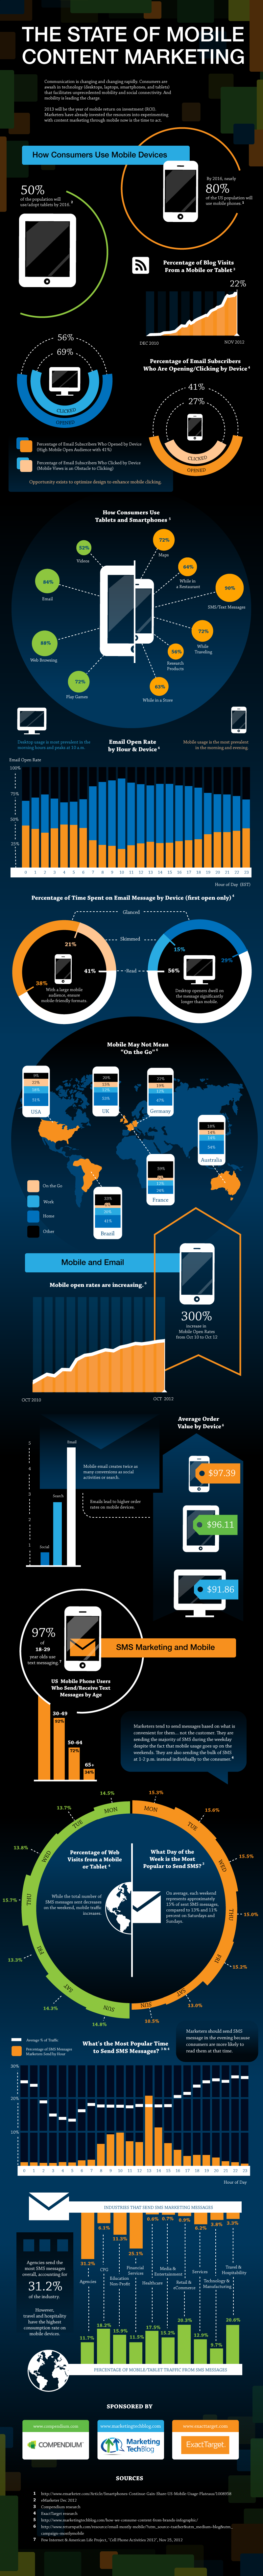 The state of mobile content marketing infographic – click for larger version